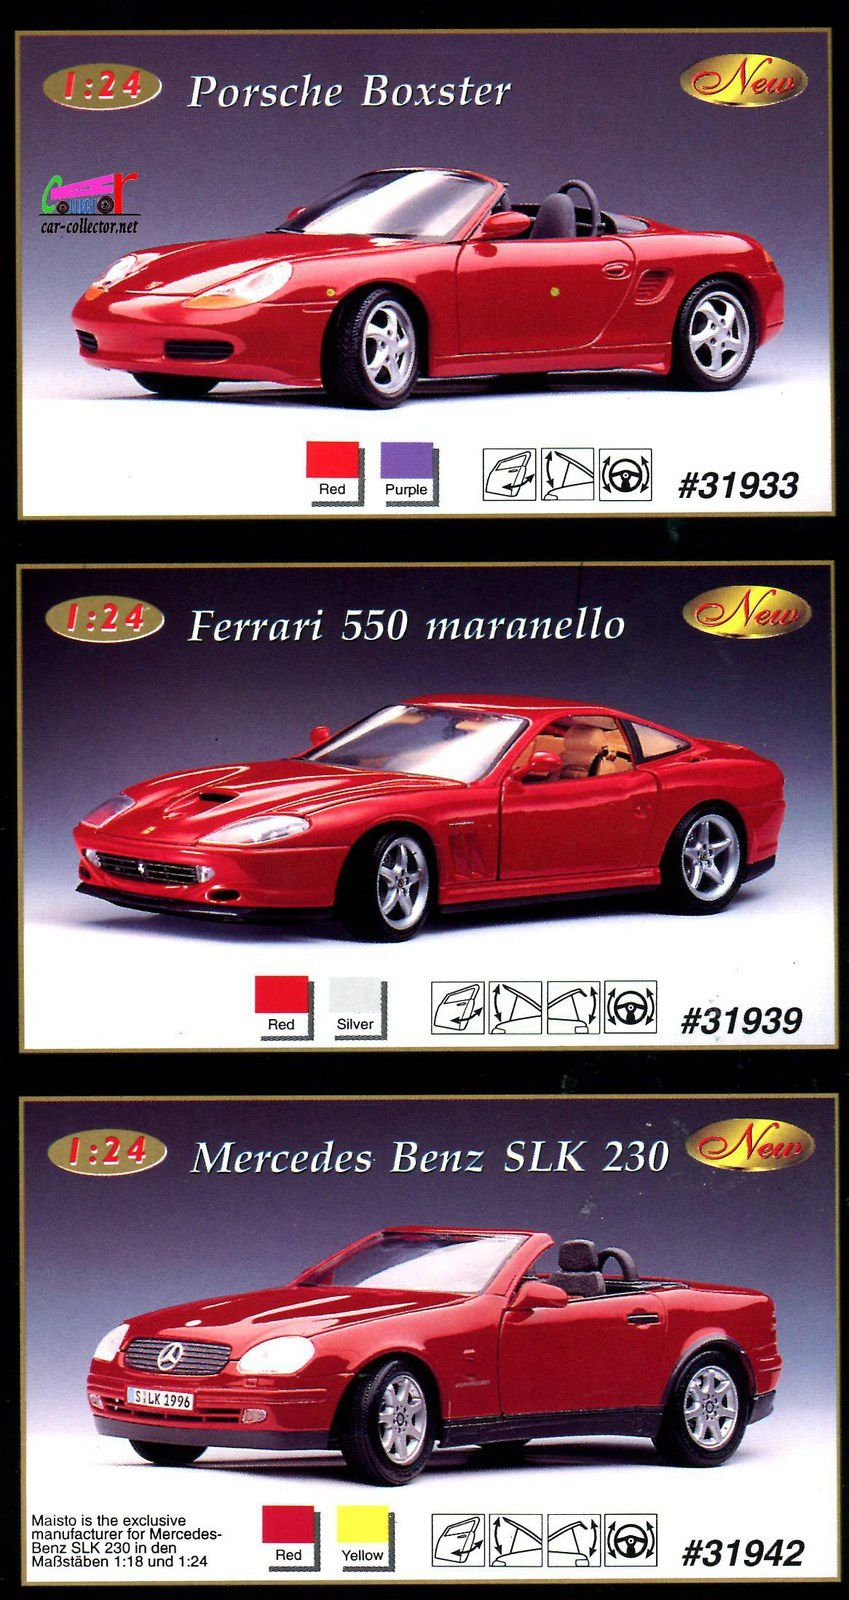 ferrari-f550-maranello-red-silver-porsche-boxster-purple-mercedes-slk-230-yellow-maisto